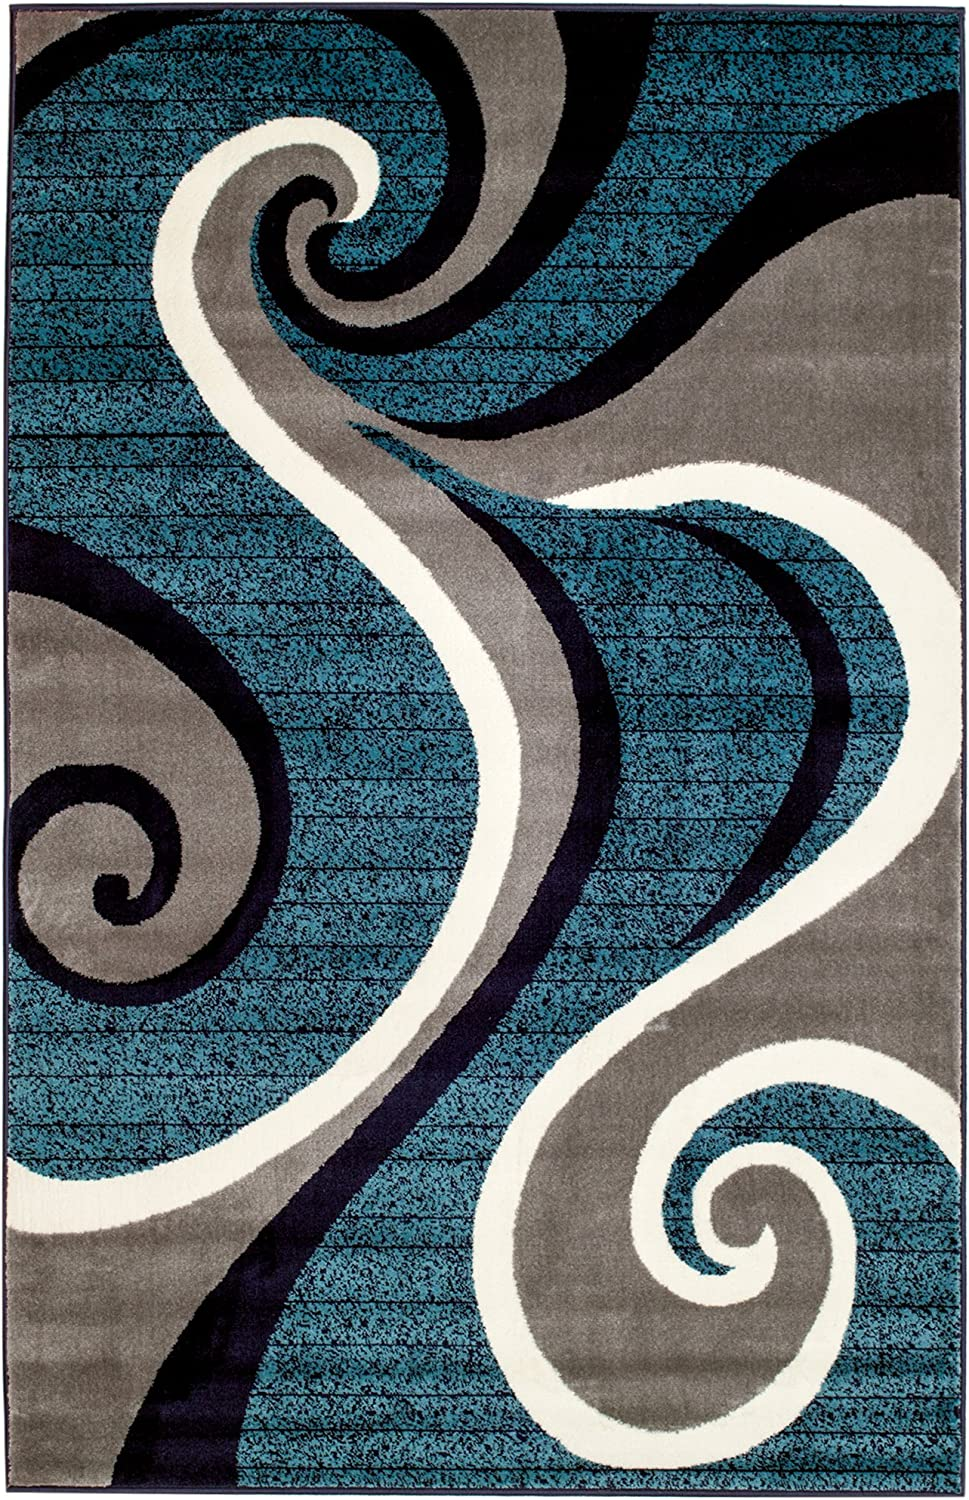 Summit CHM 201 New 032Swirl Blue Navy White Light Gray Area Rug Abstract Carpet Sizes Available , 2 X 3 ACTUAL IS DOOR MAT 22''X35''